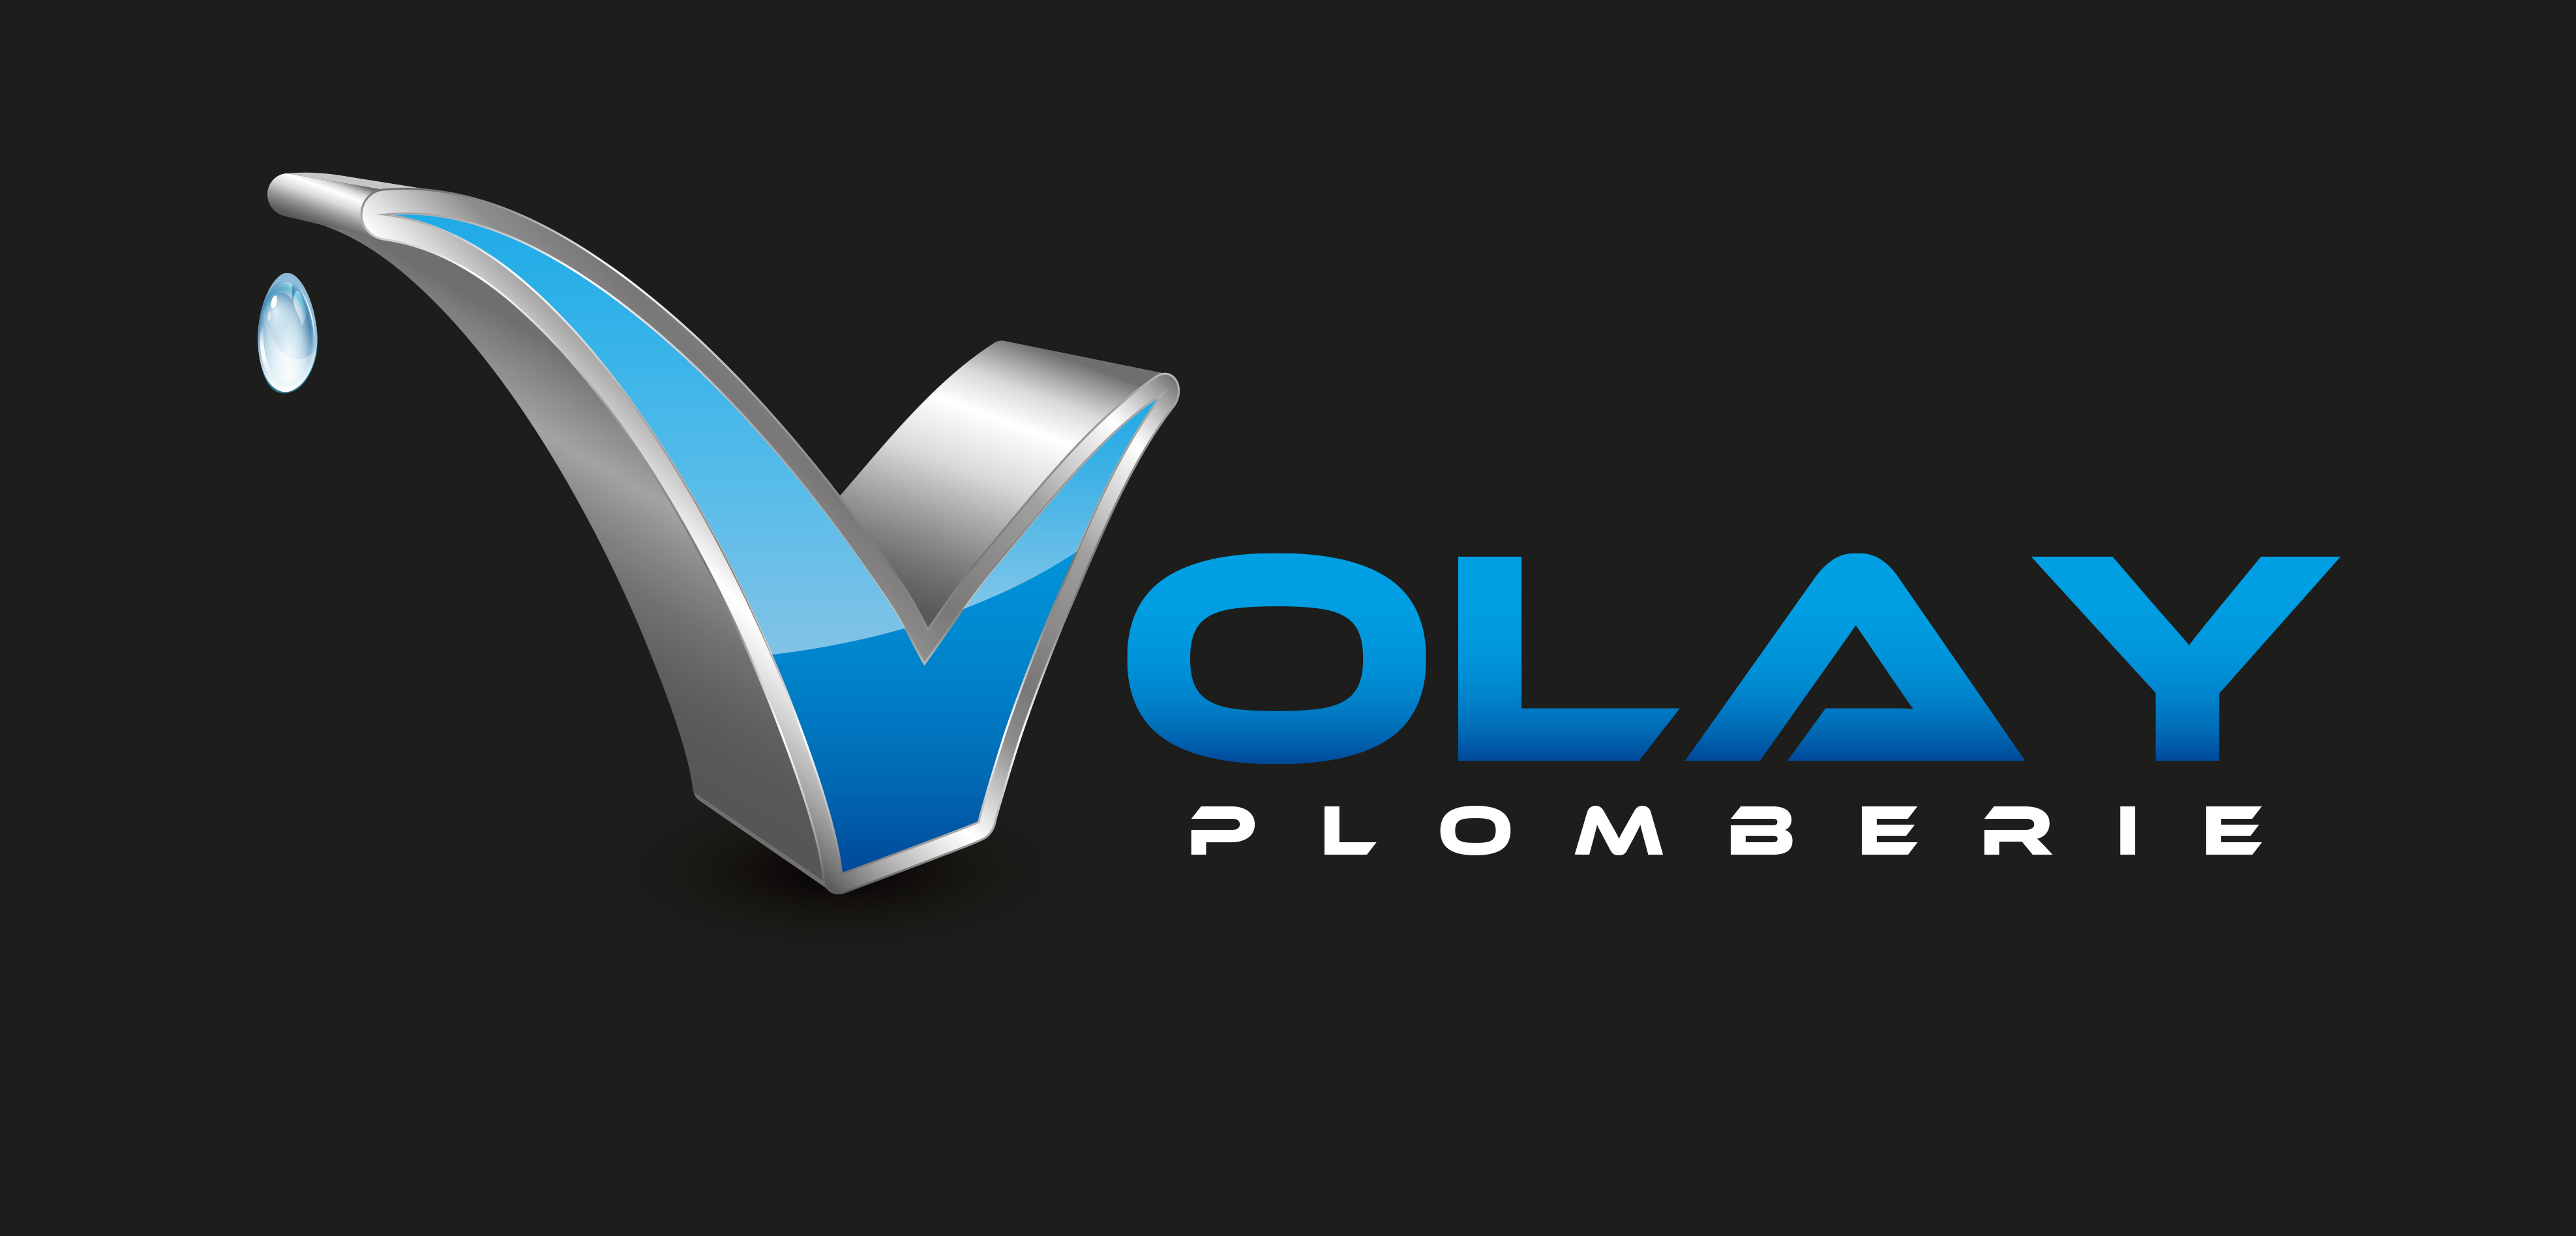 creation-logo-volay-plomberie-magnetik-graphisme-lyon.jpg